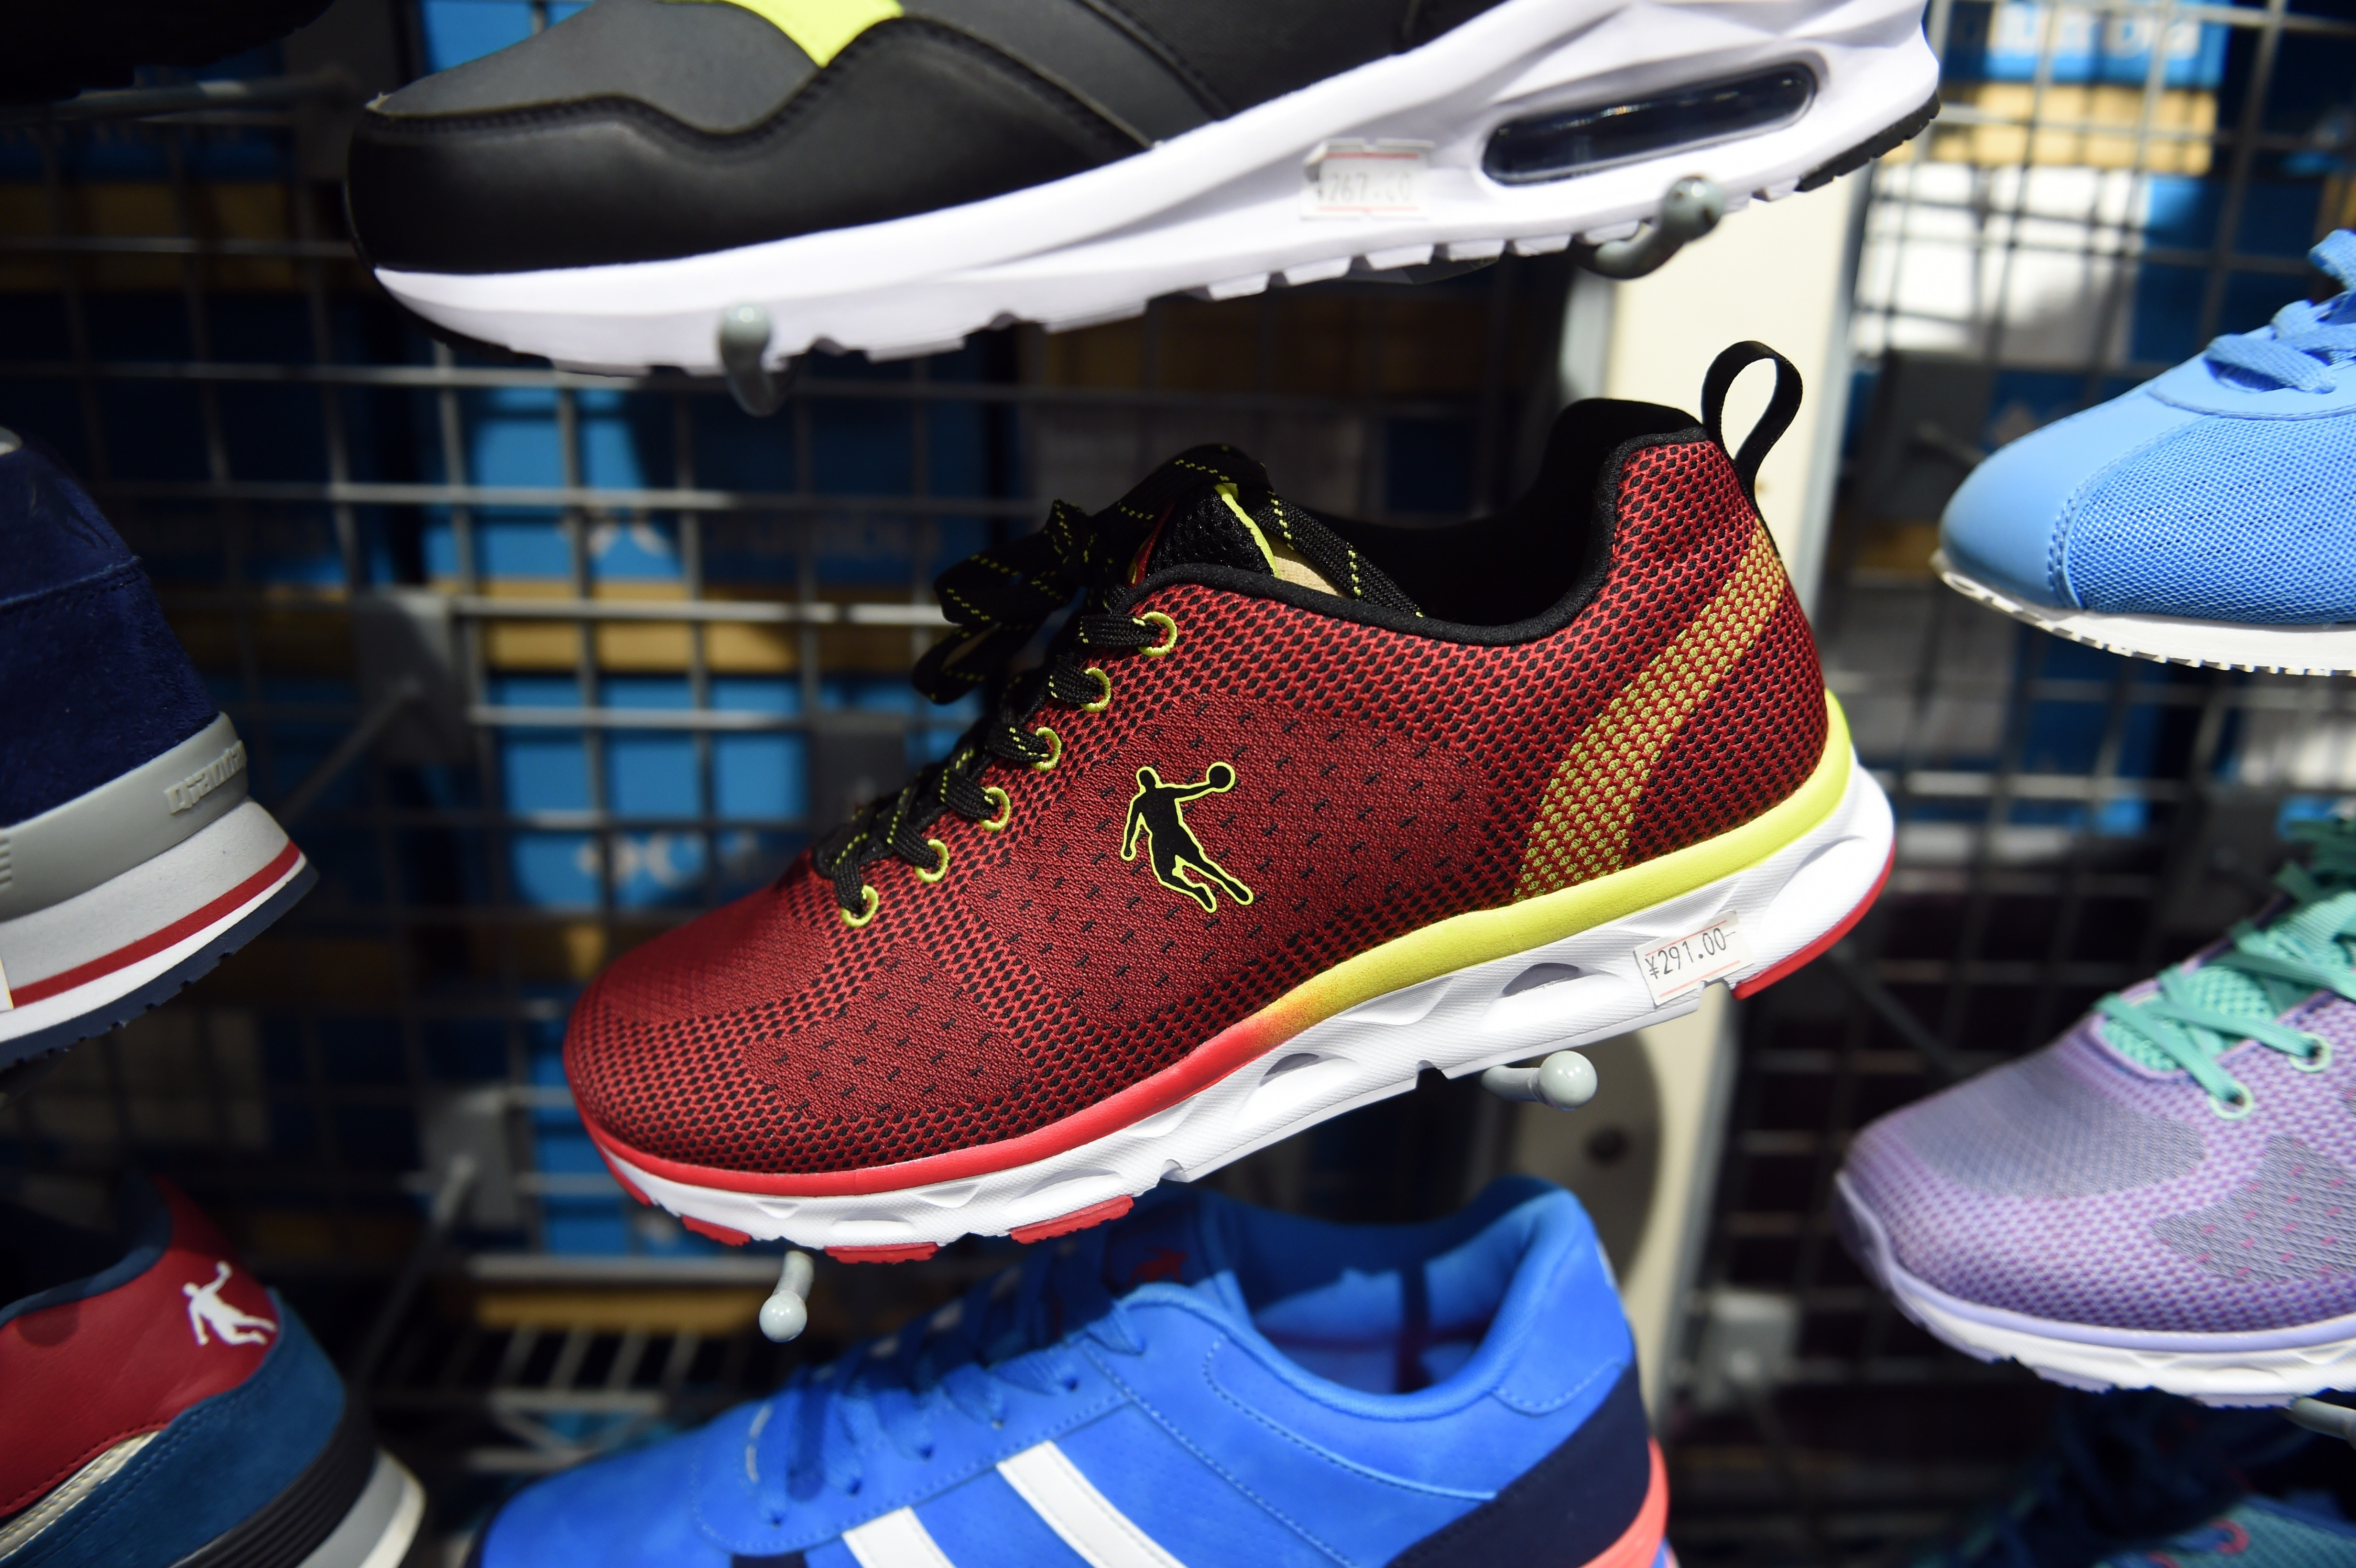 Qiaodan brand shoes at a store in Beijing, China, on July 29, 2015. (Greg  Baker/AFP/Getty Images)